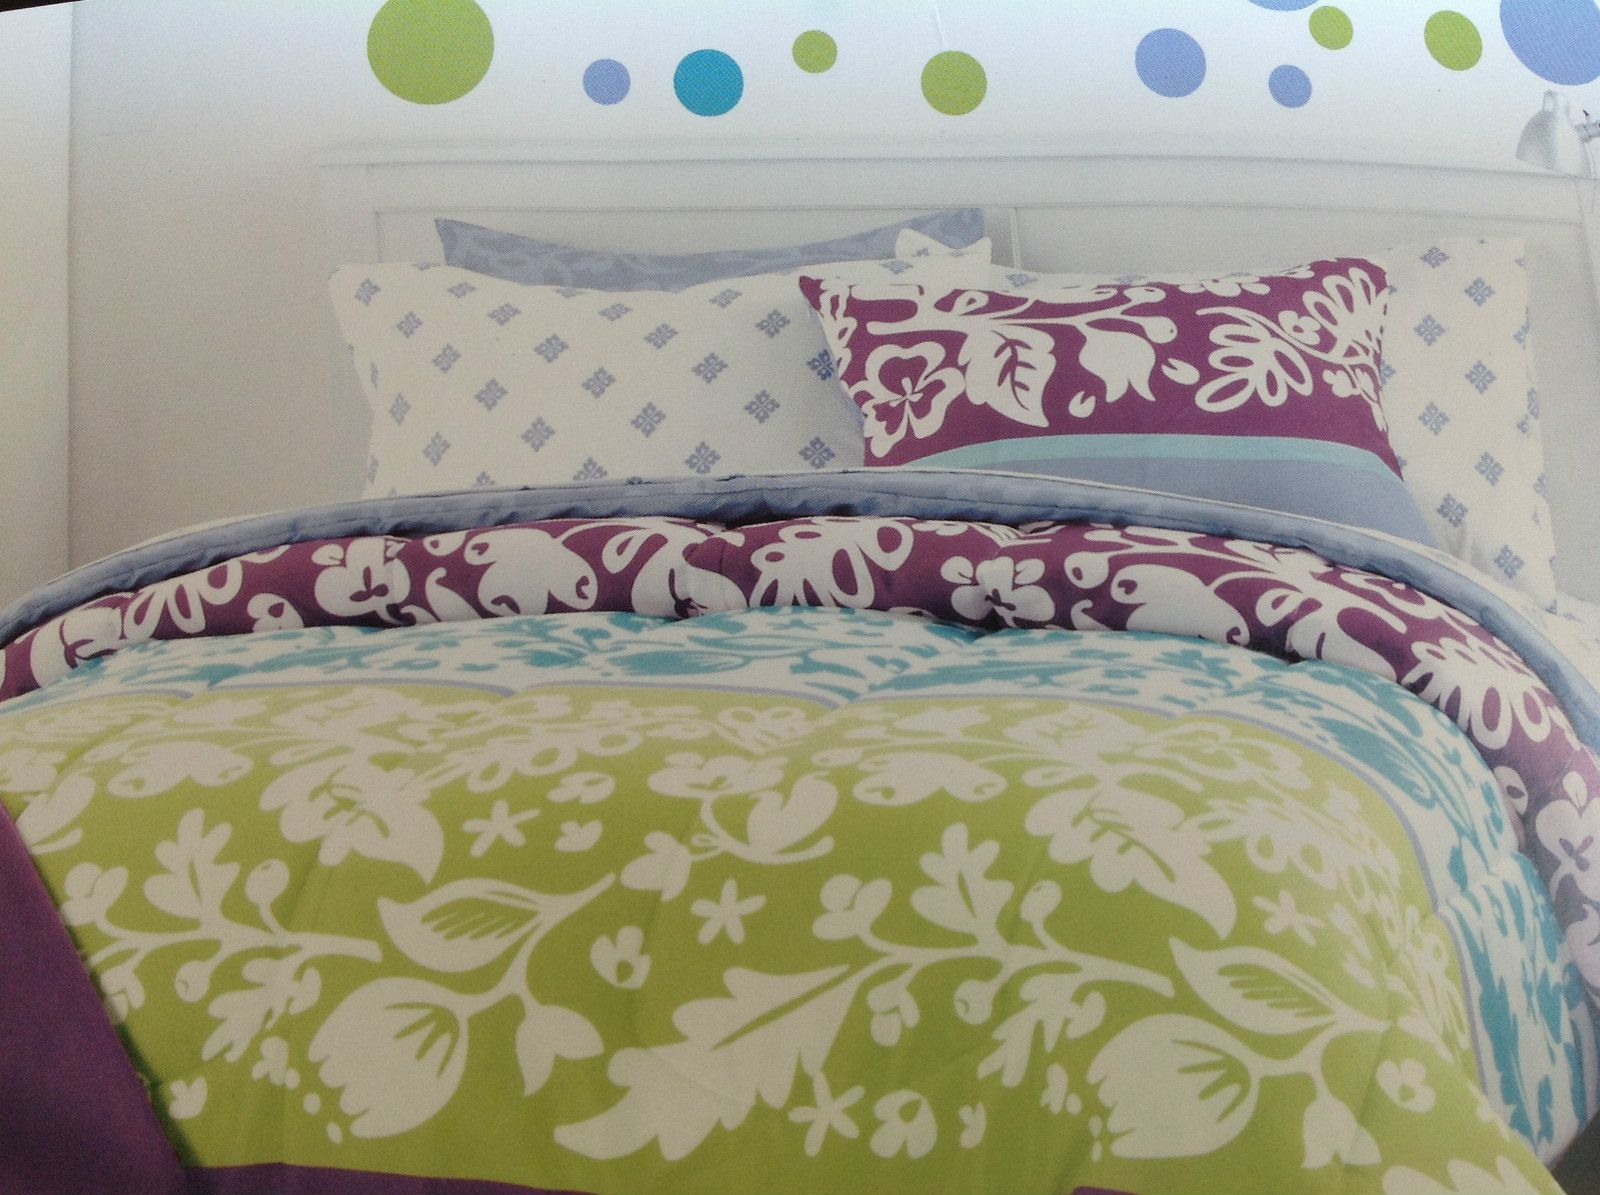 university tide set and bedding pin this comforters alabama roll of comforter dorm is a custom must room